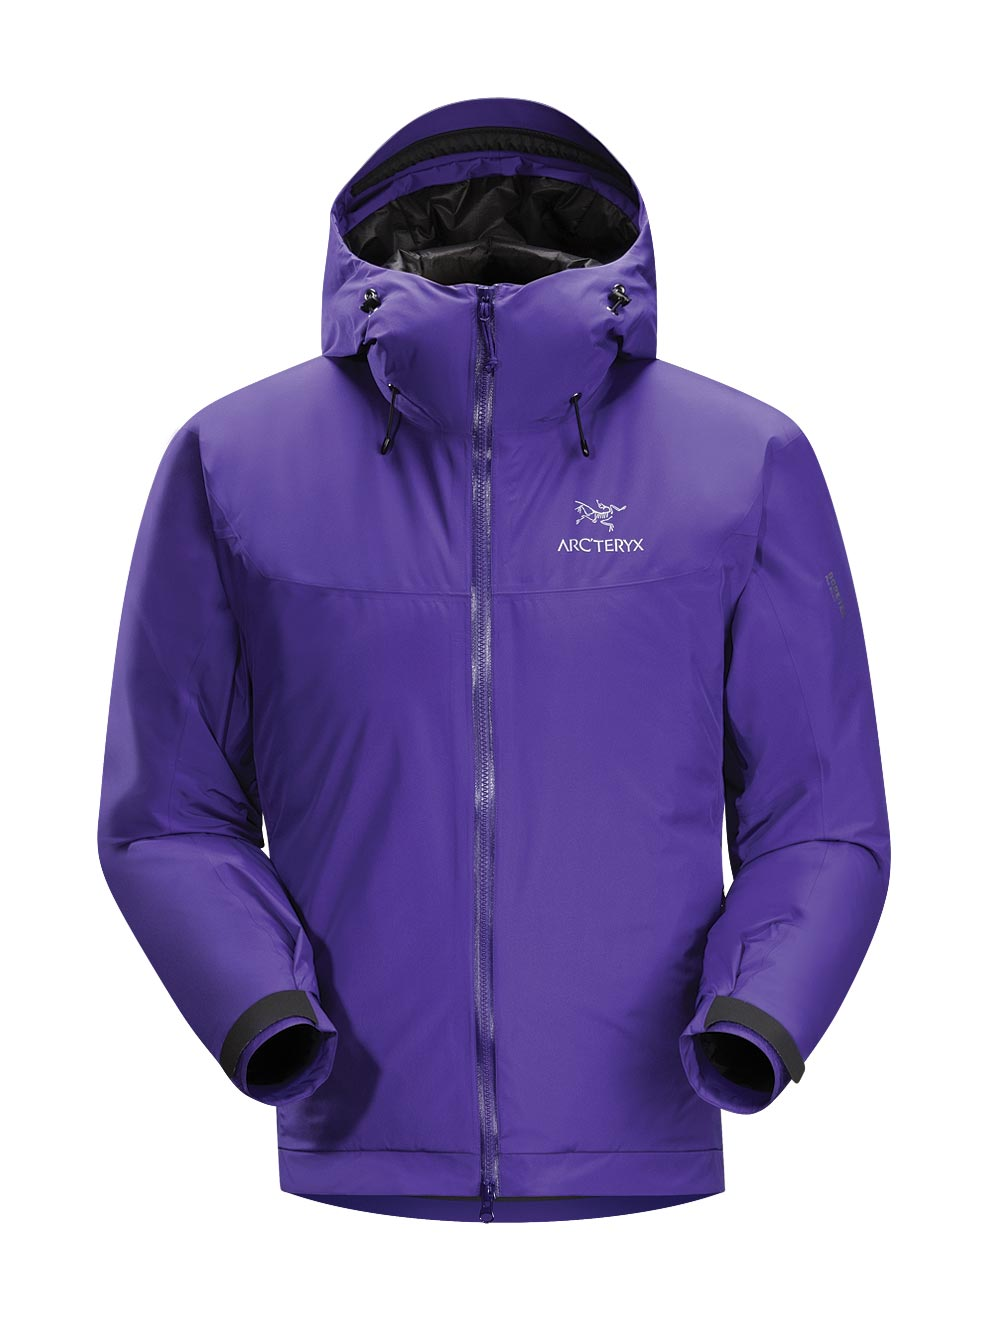 Arcteryx Jackets Men Squid Ink Fission SL Jacket